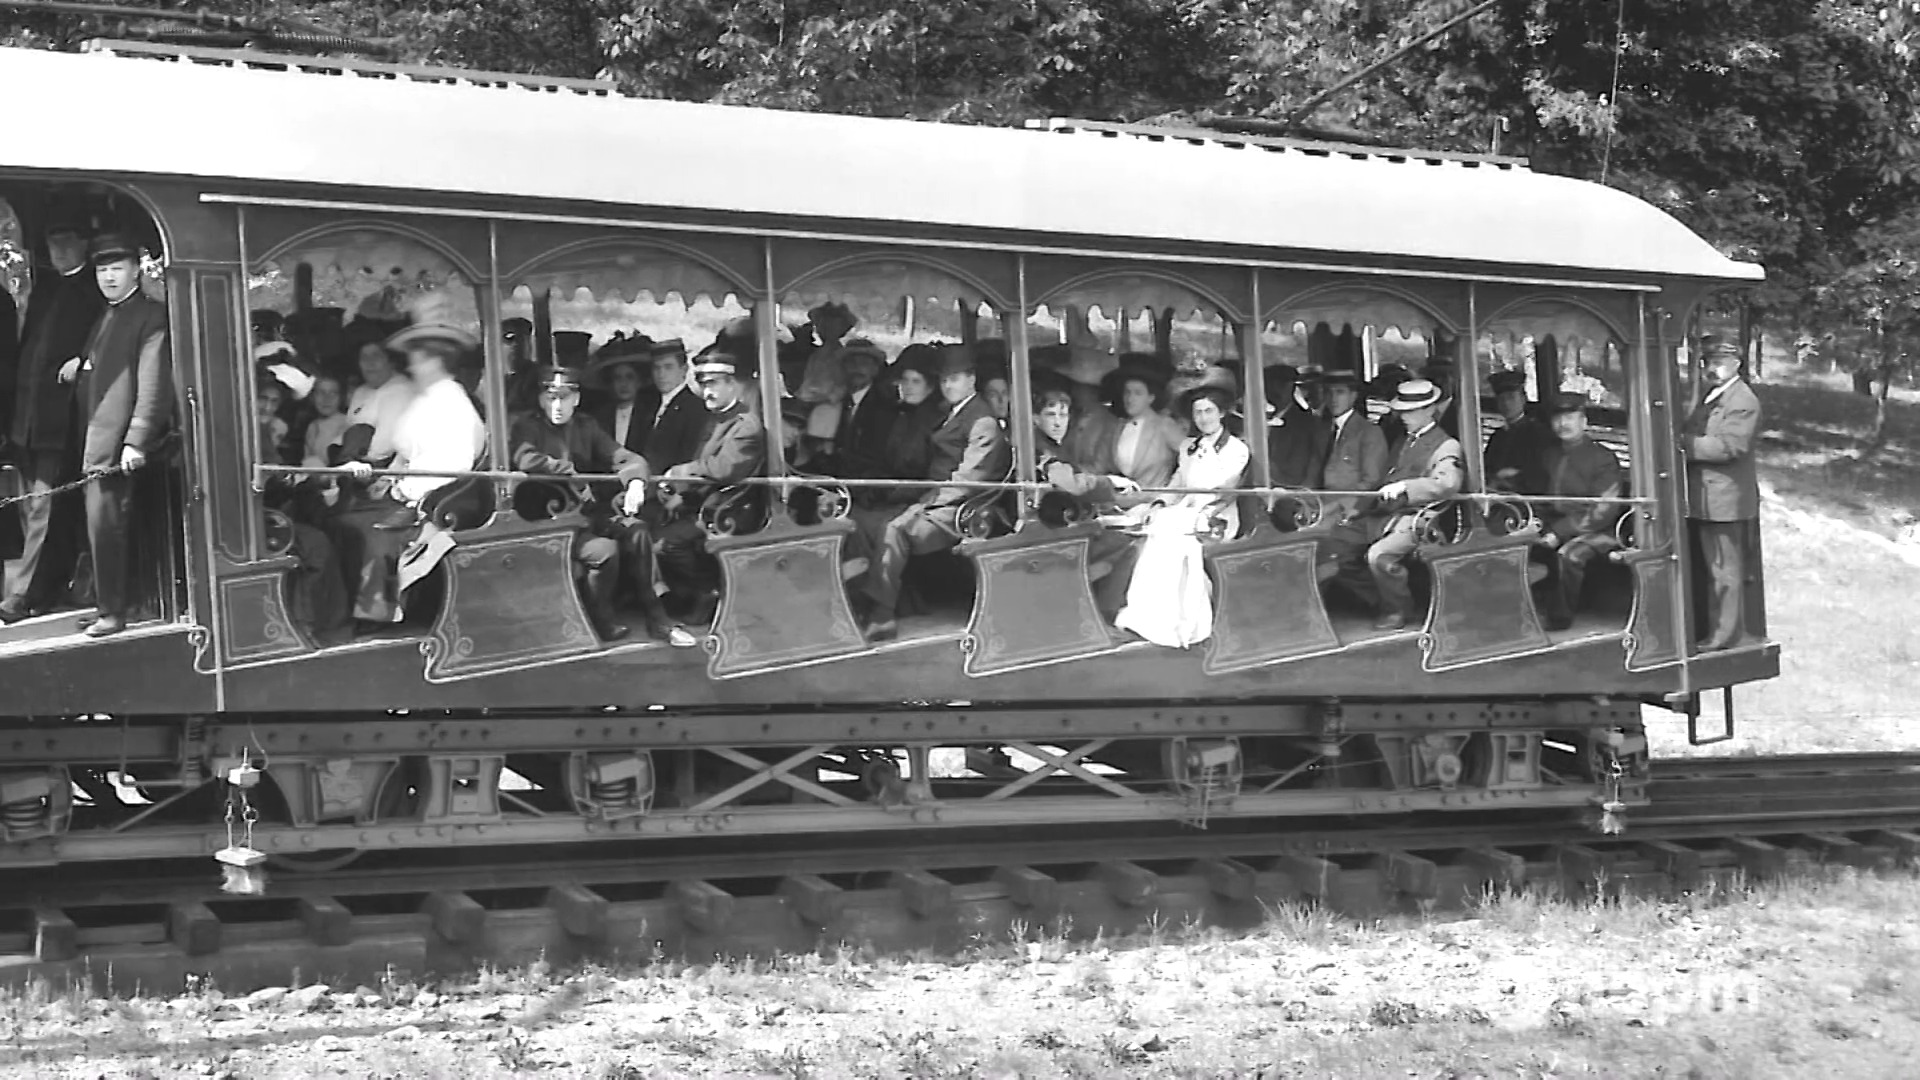 Vintage, black and white photo of men and women riding a train car on the Mt. Tom Inclined railroad.